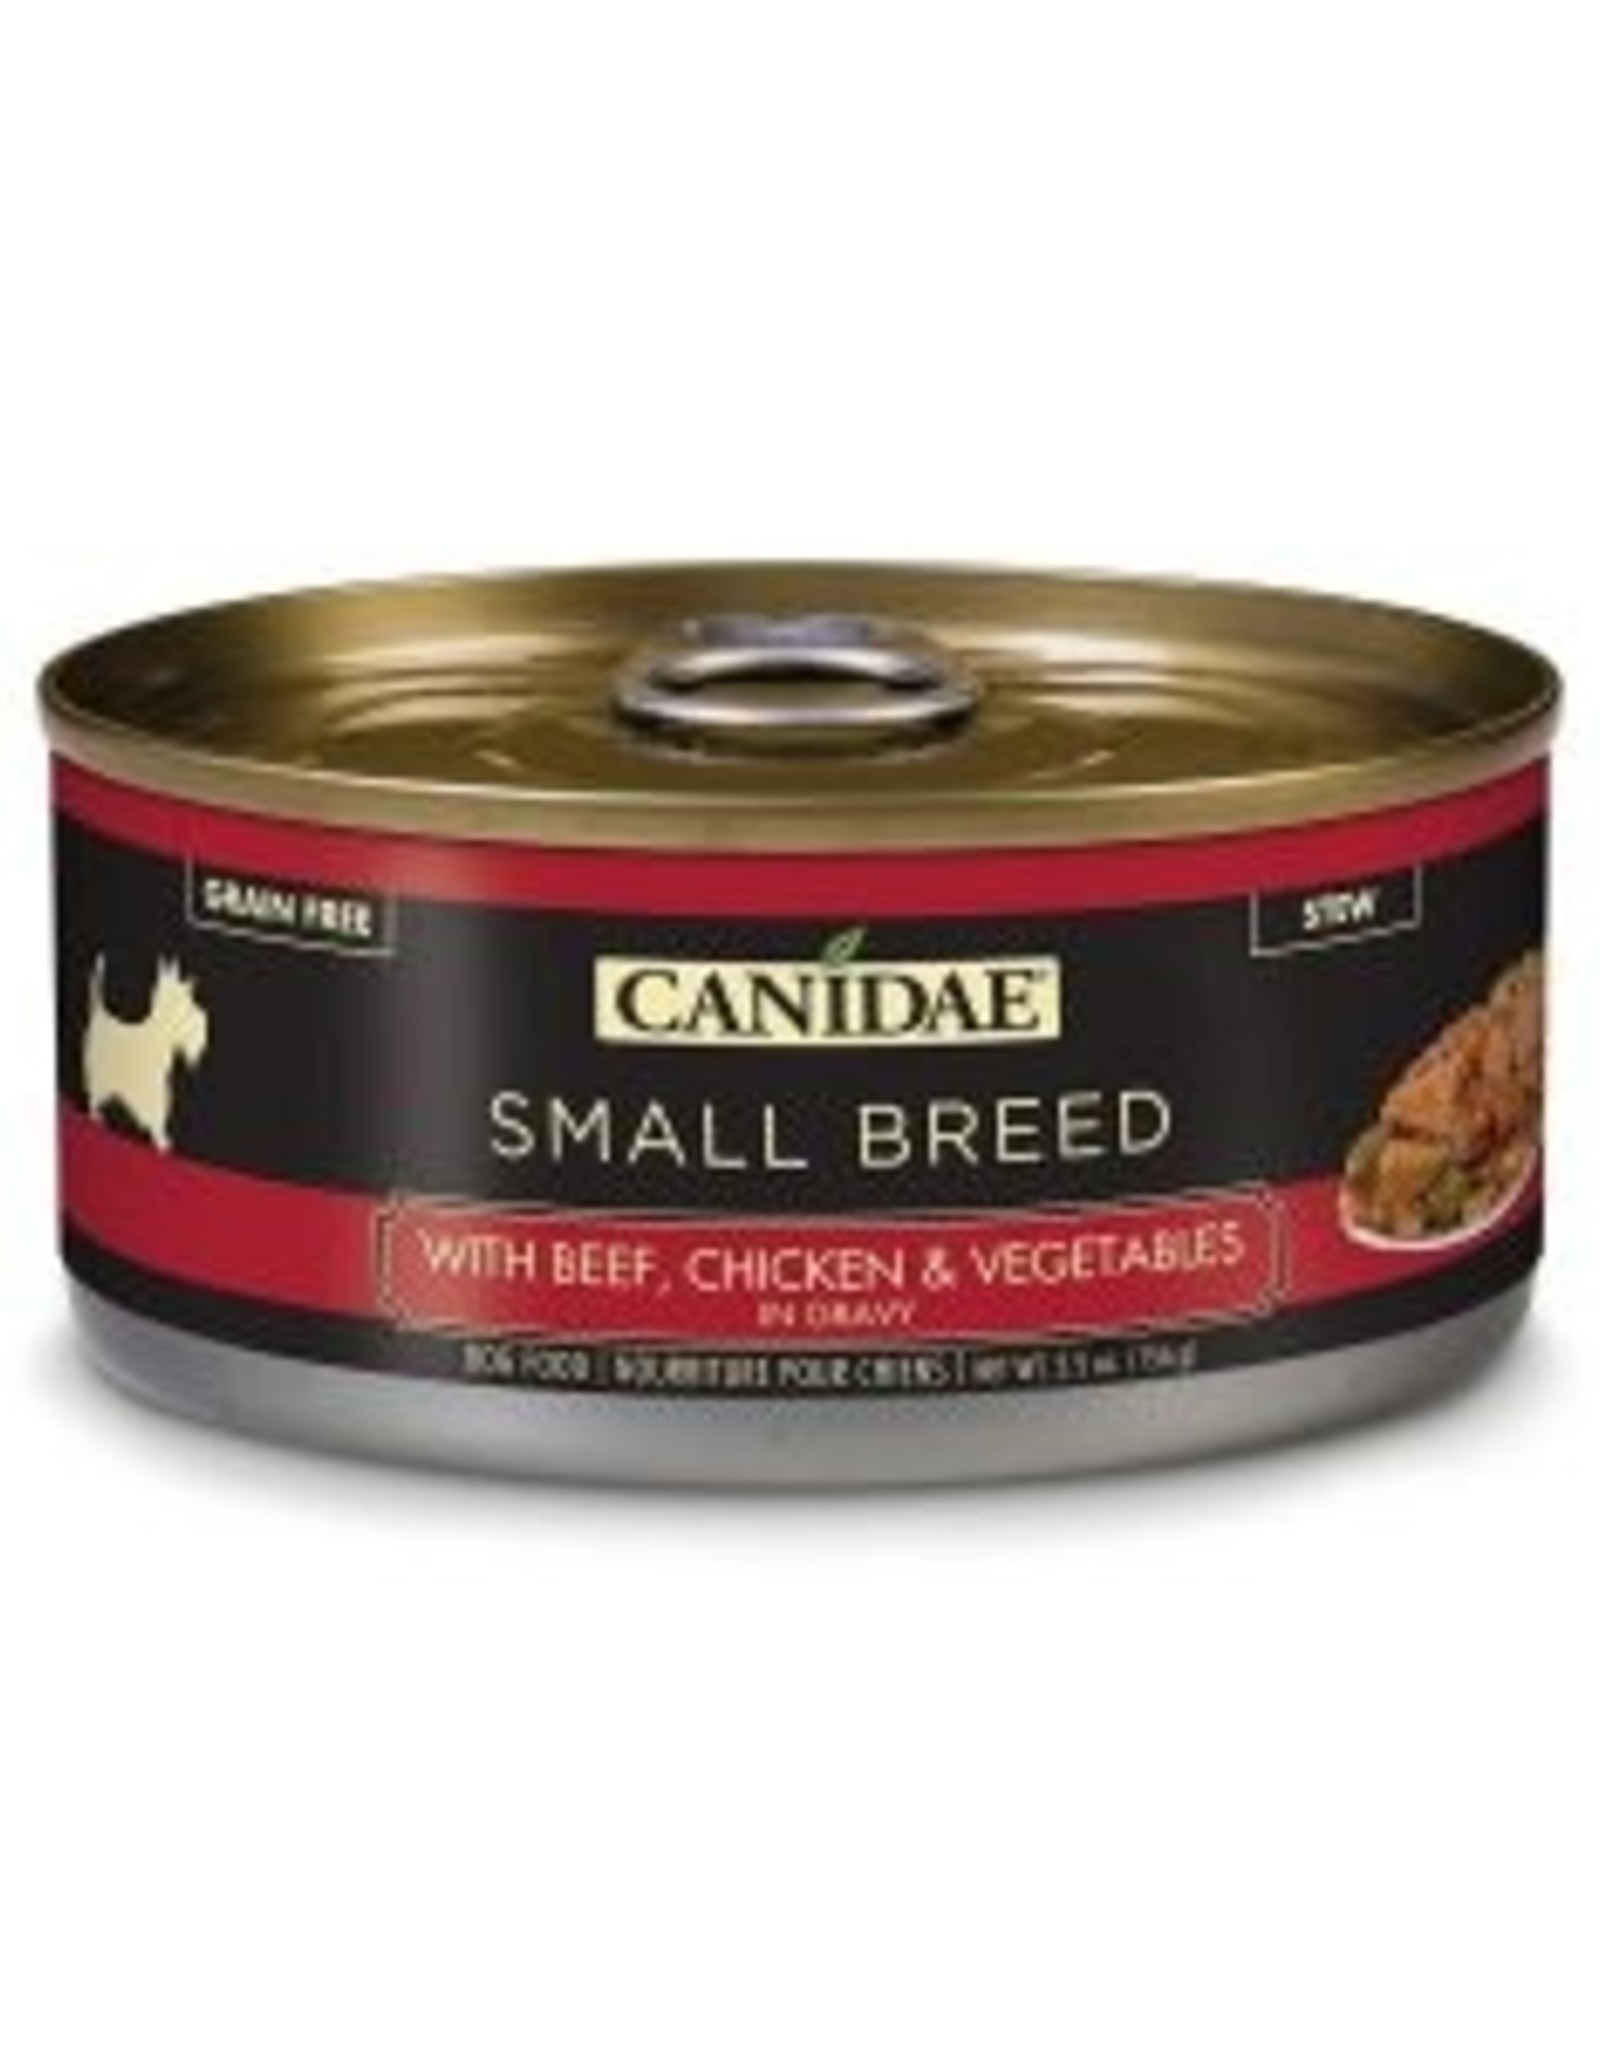 CANIDAE PET FOODS CANIDAE CAN DOG SMALL BREED BEEF, CHICKEN & VEGETABLES IN GRAVY 5.5OZ CASE OF 24